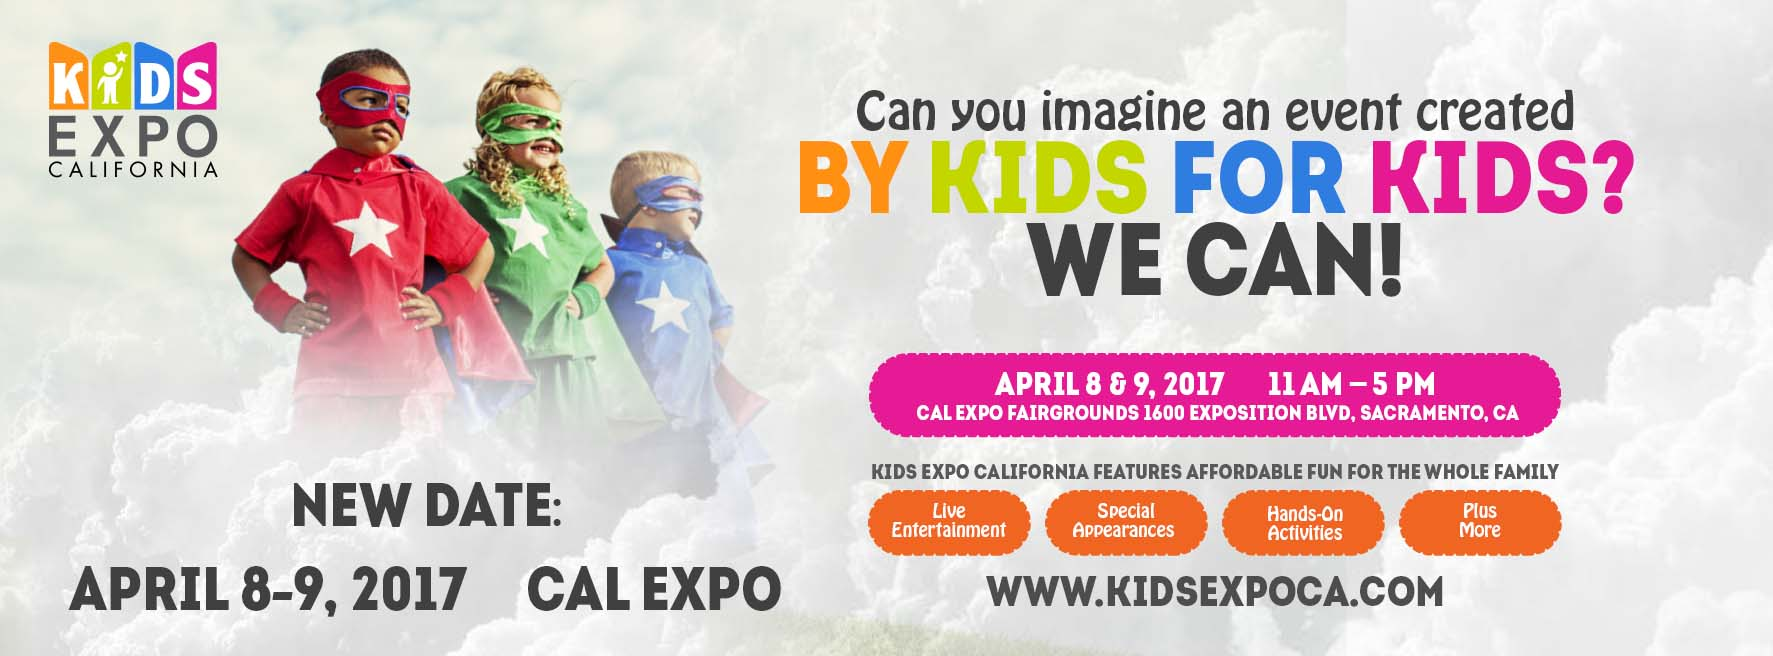 Kids Expo Ca